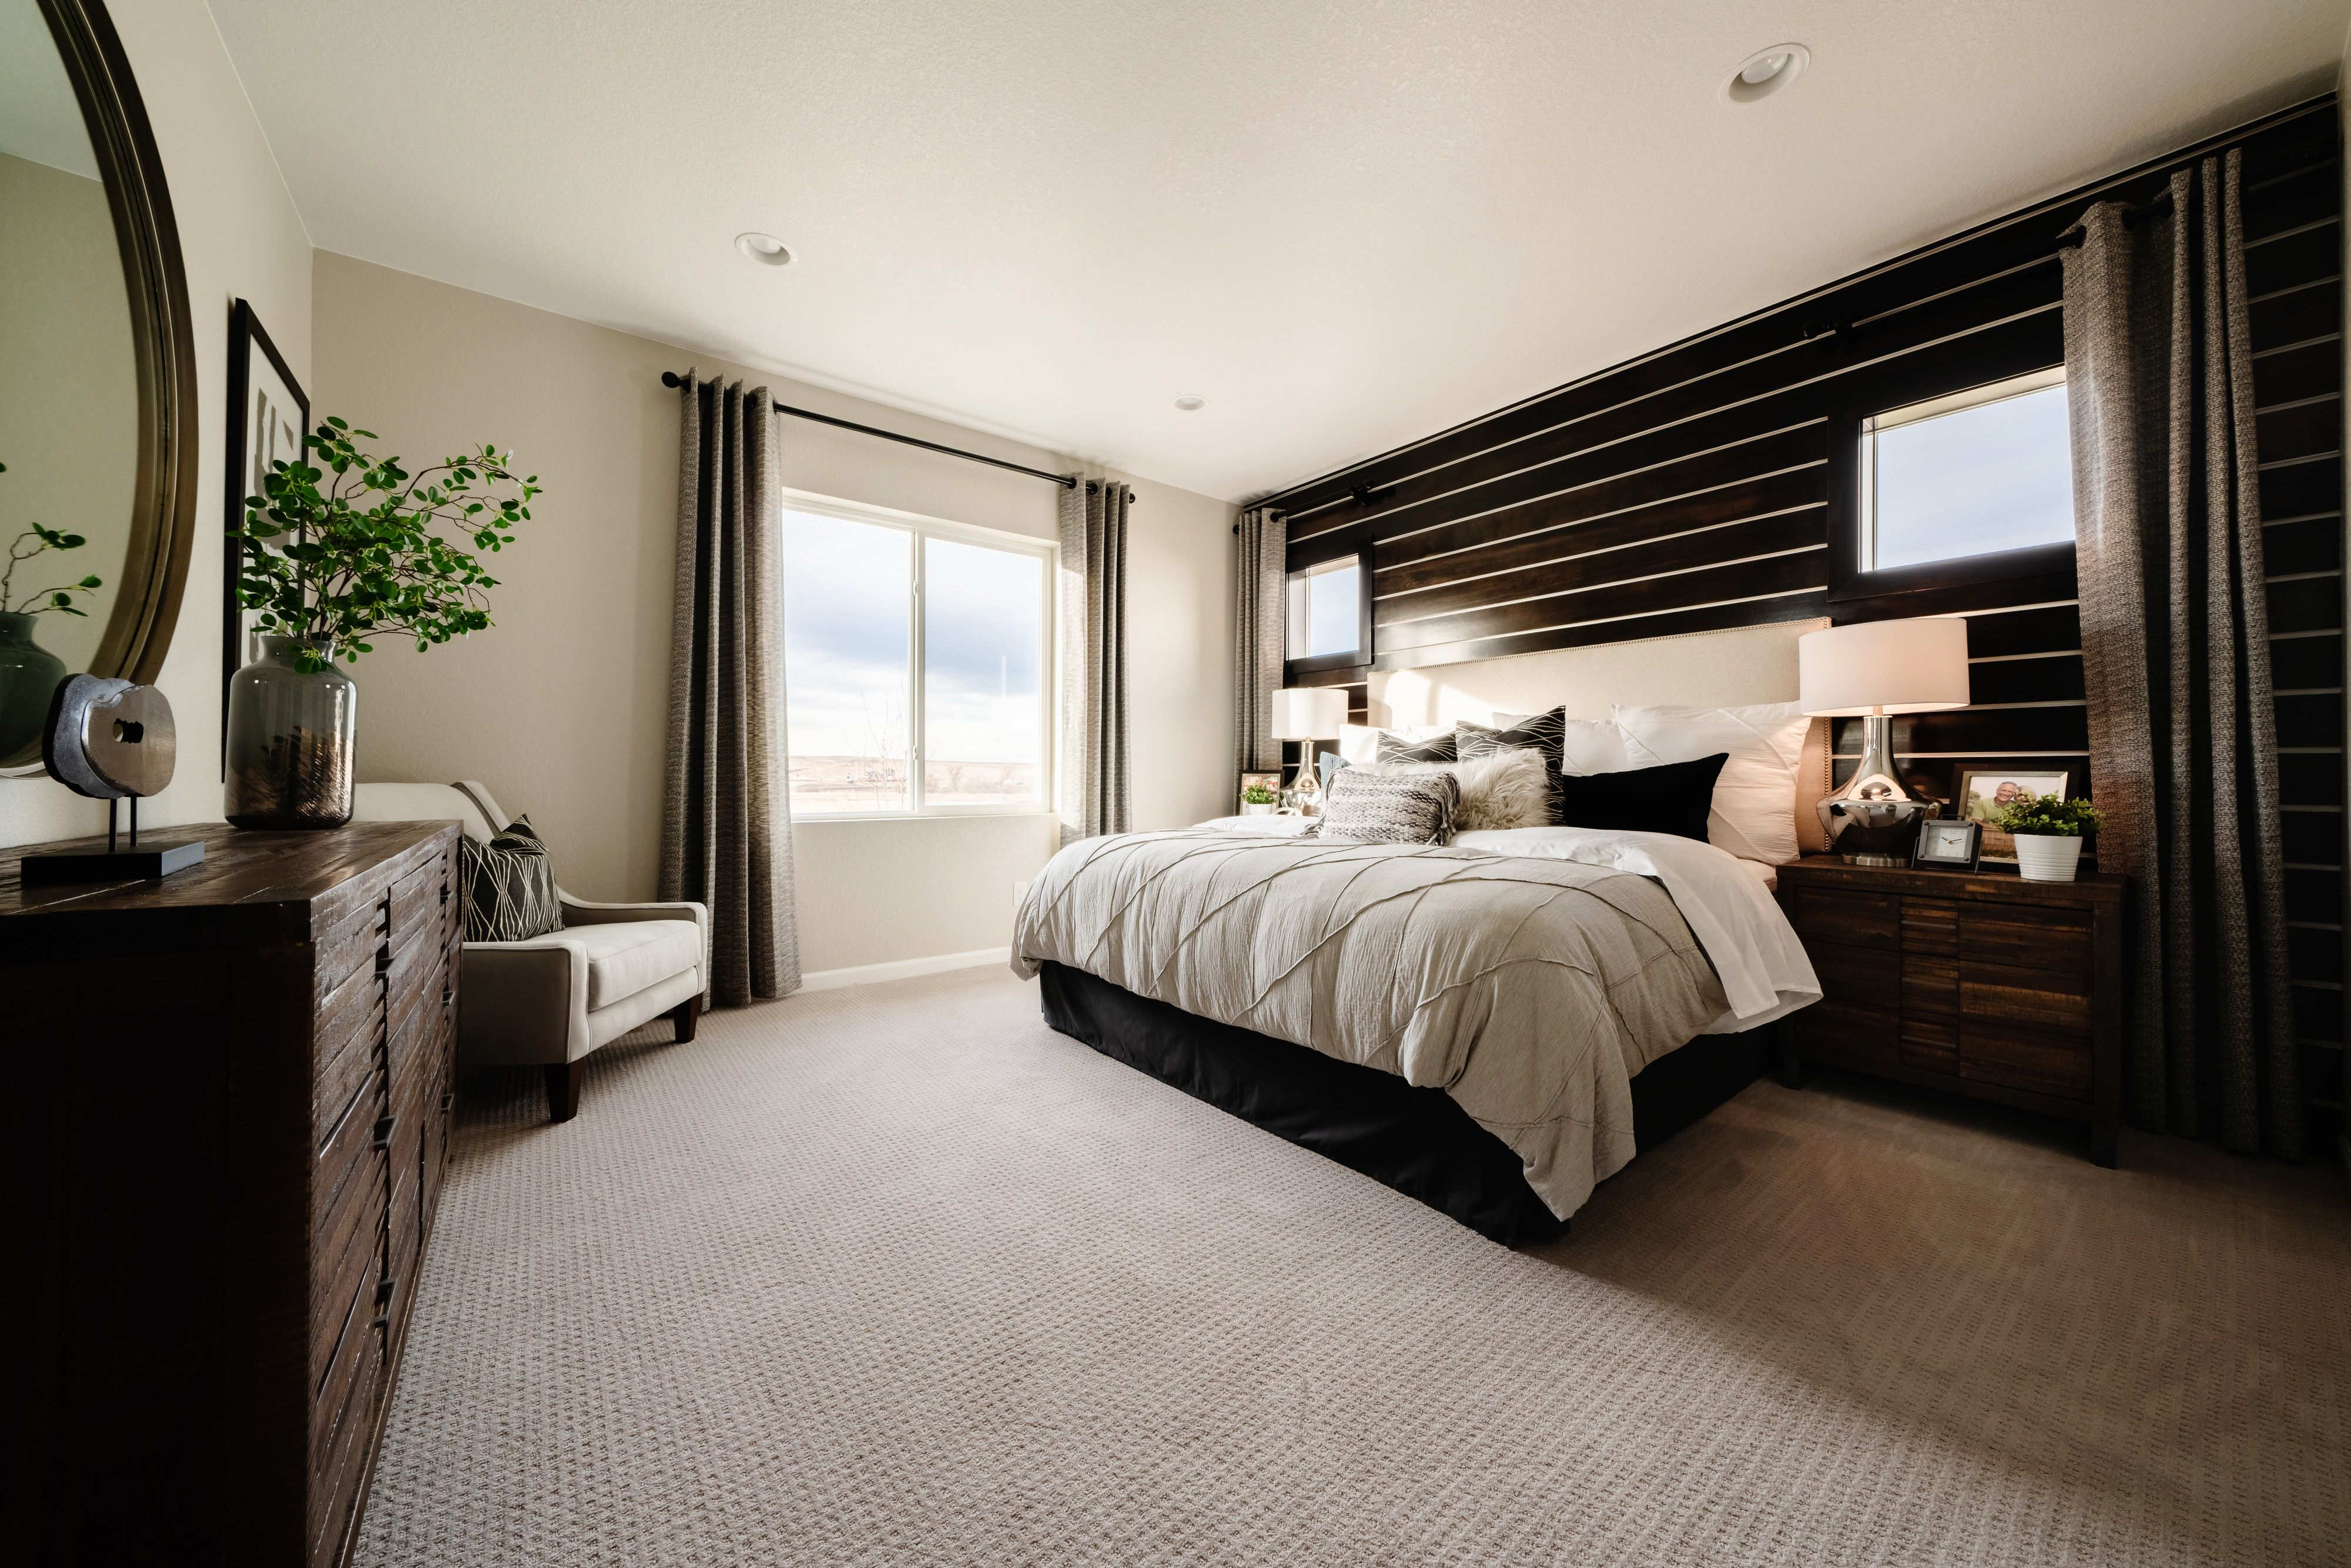 Bedroom featured in the Centennial By Taylor Morrison in Denver, CO